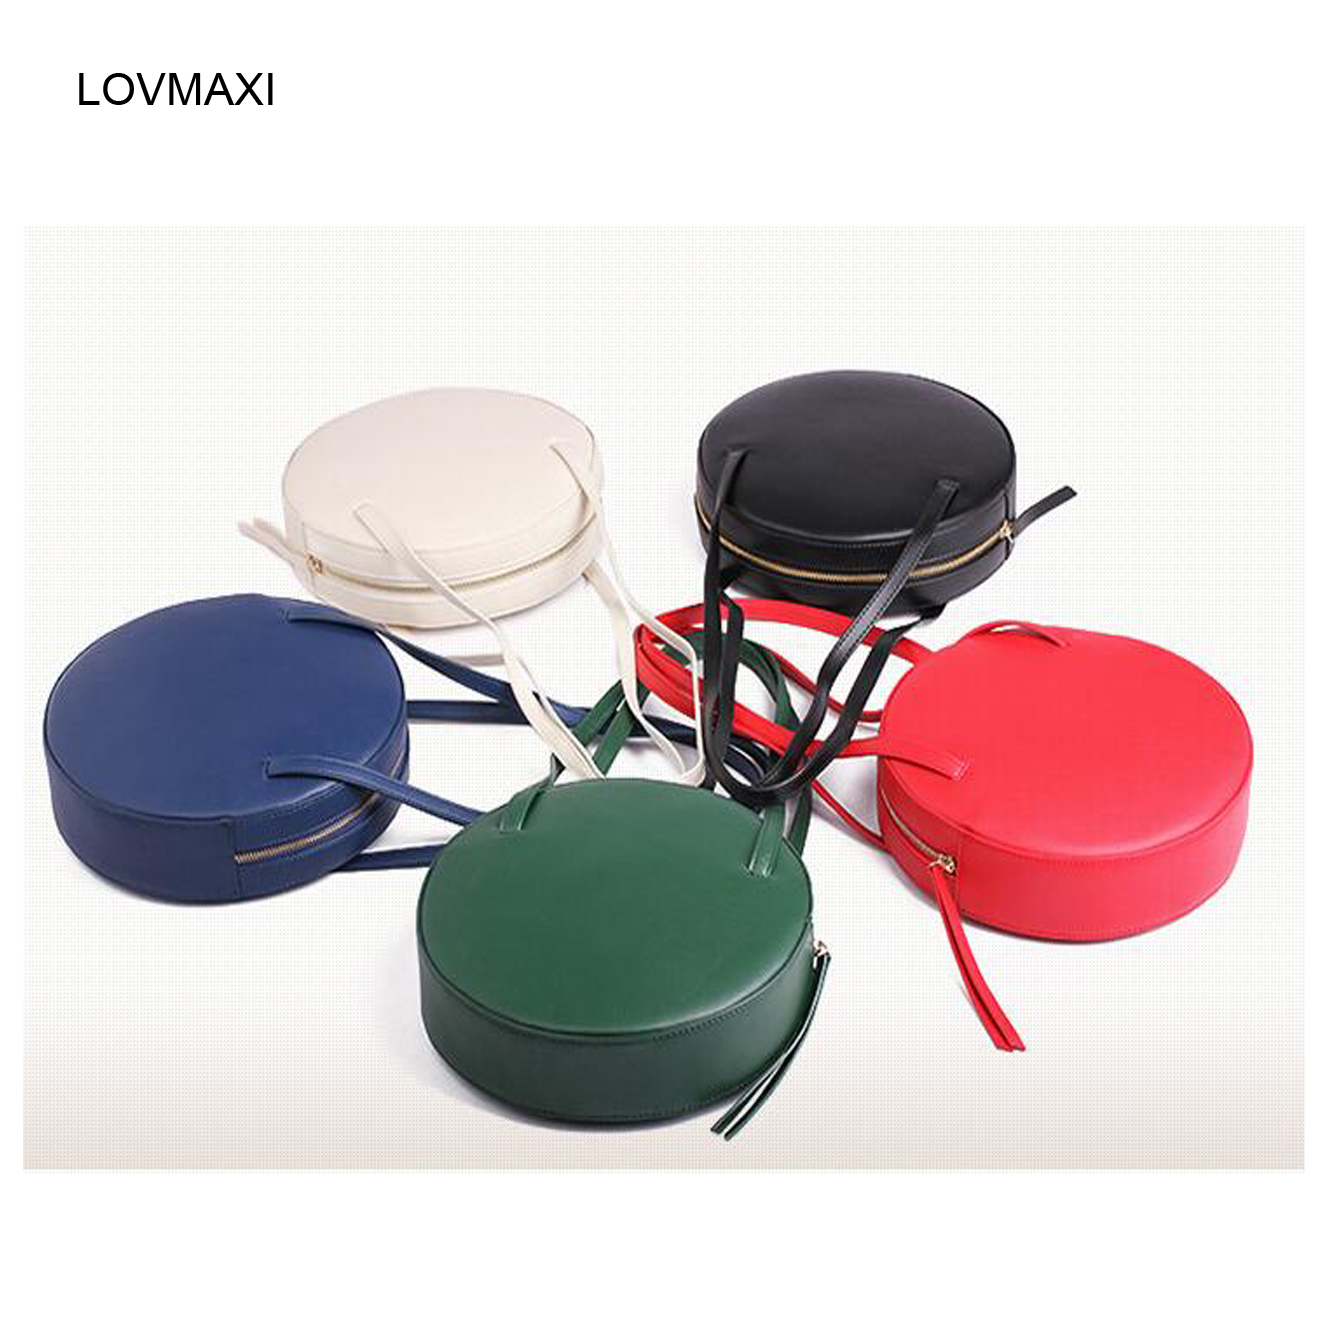 New womens round bags leather circle box handbags messenger bag for lady causal shoulder bags portable bag<br>